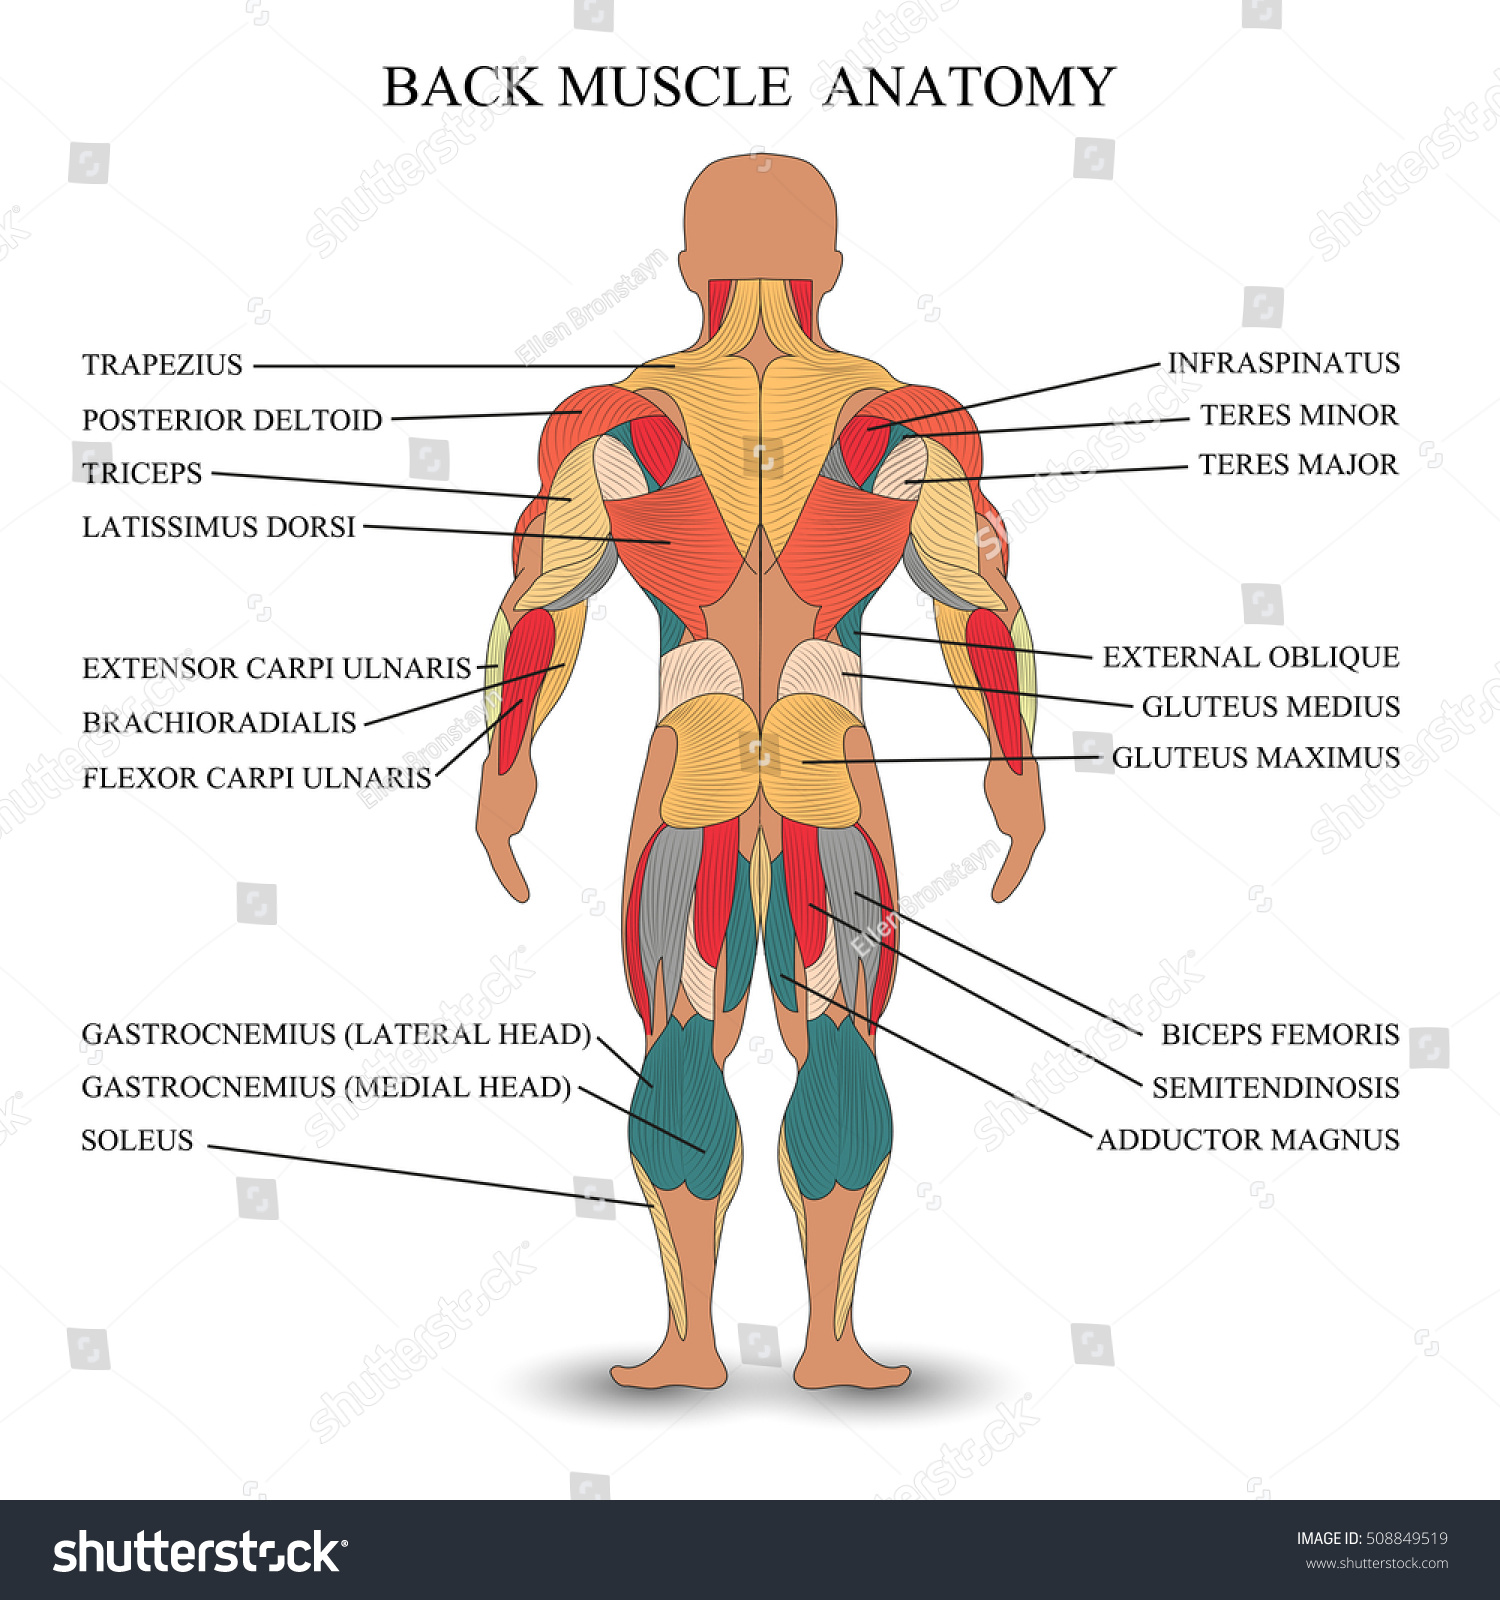 Anatomy Human Muscles Back Template Medical Stock Vektorgrafik